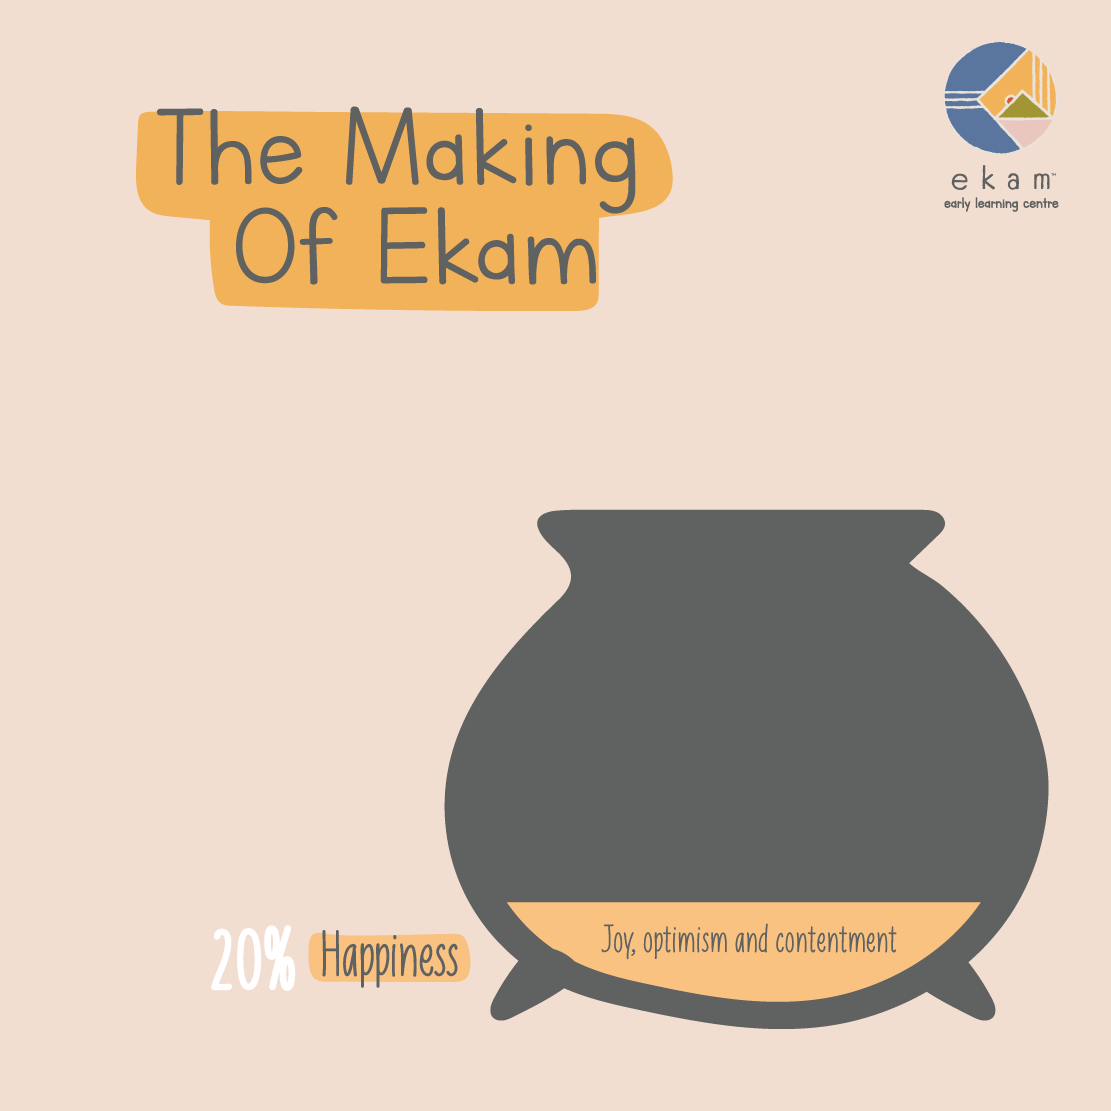 We have been cooking something exciting and special. At Ekam, Happiness is the first ingredient in the recipe for learning. Having space for students to discover the joy of learning is essential. The countdown to the launch has now begun #12daystogo